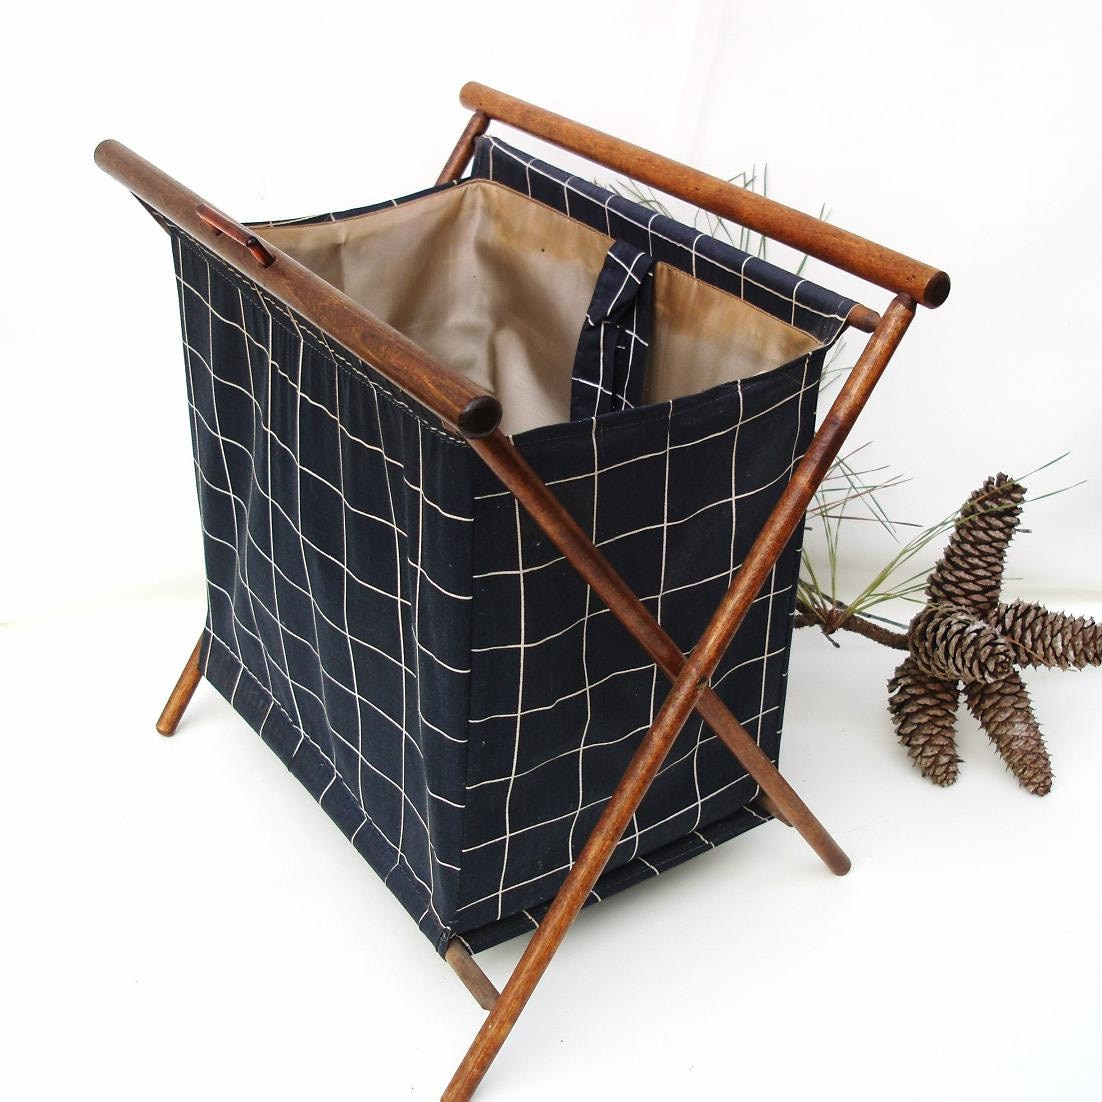 Knitting Basket With Handles : Vintage folding sewing basket knitting project bag by